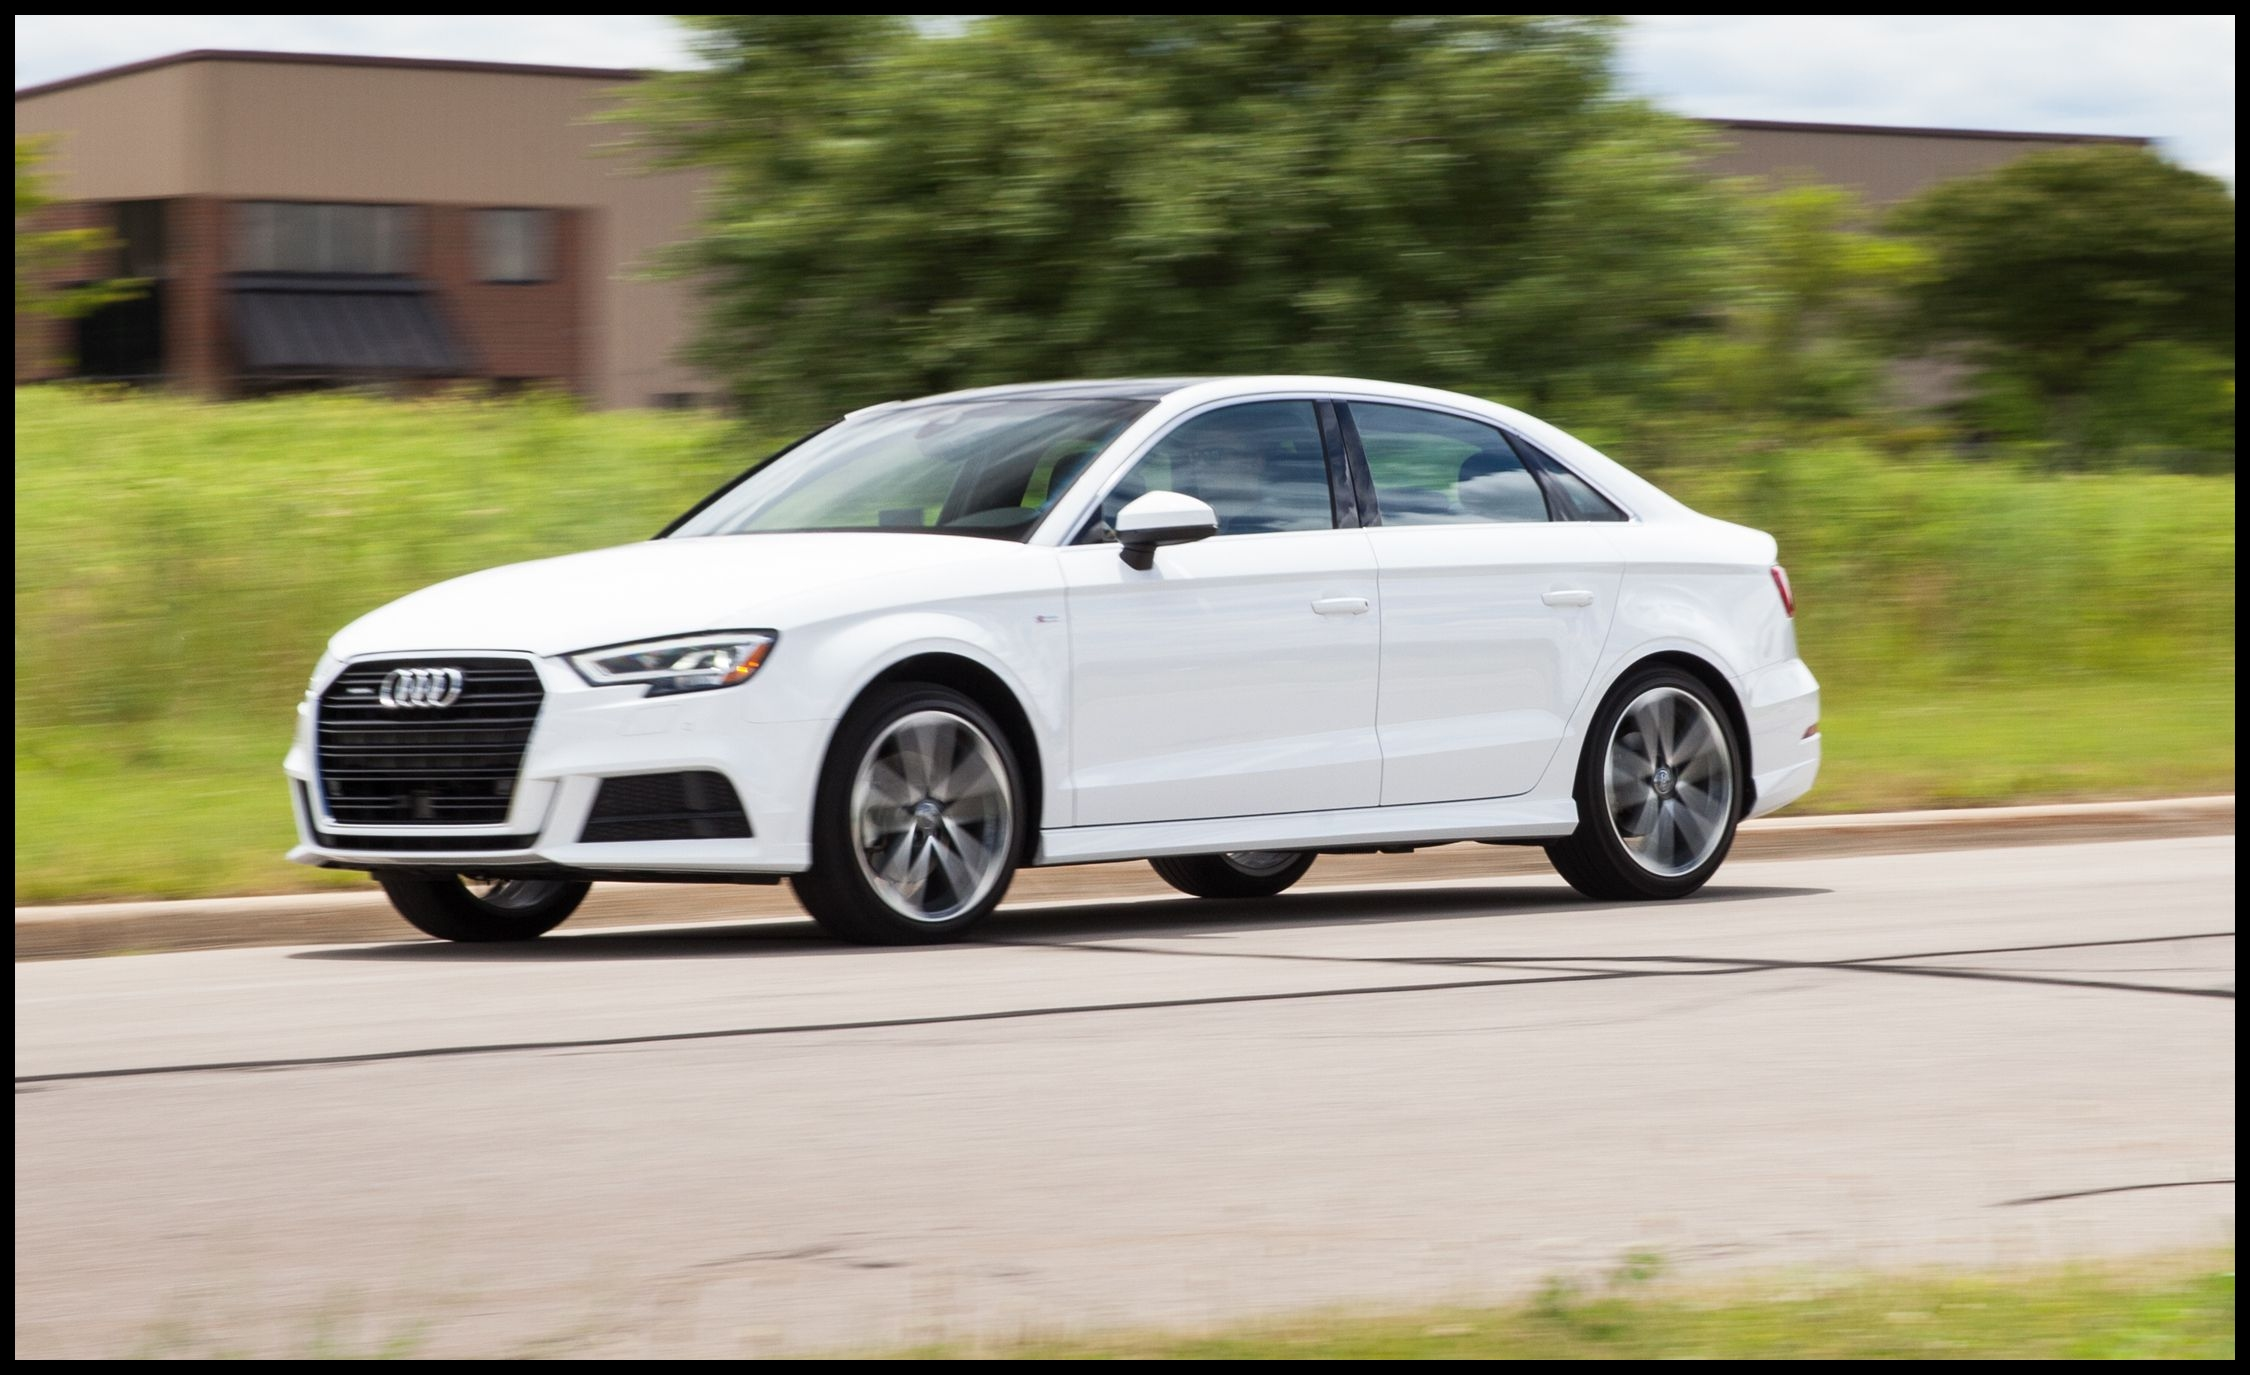 2017 audi a3 20t quattro test review car and driver photo s original